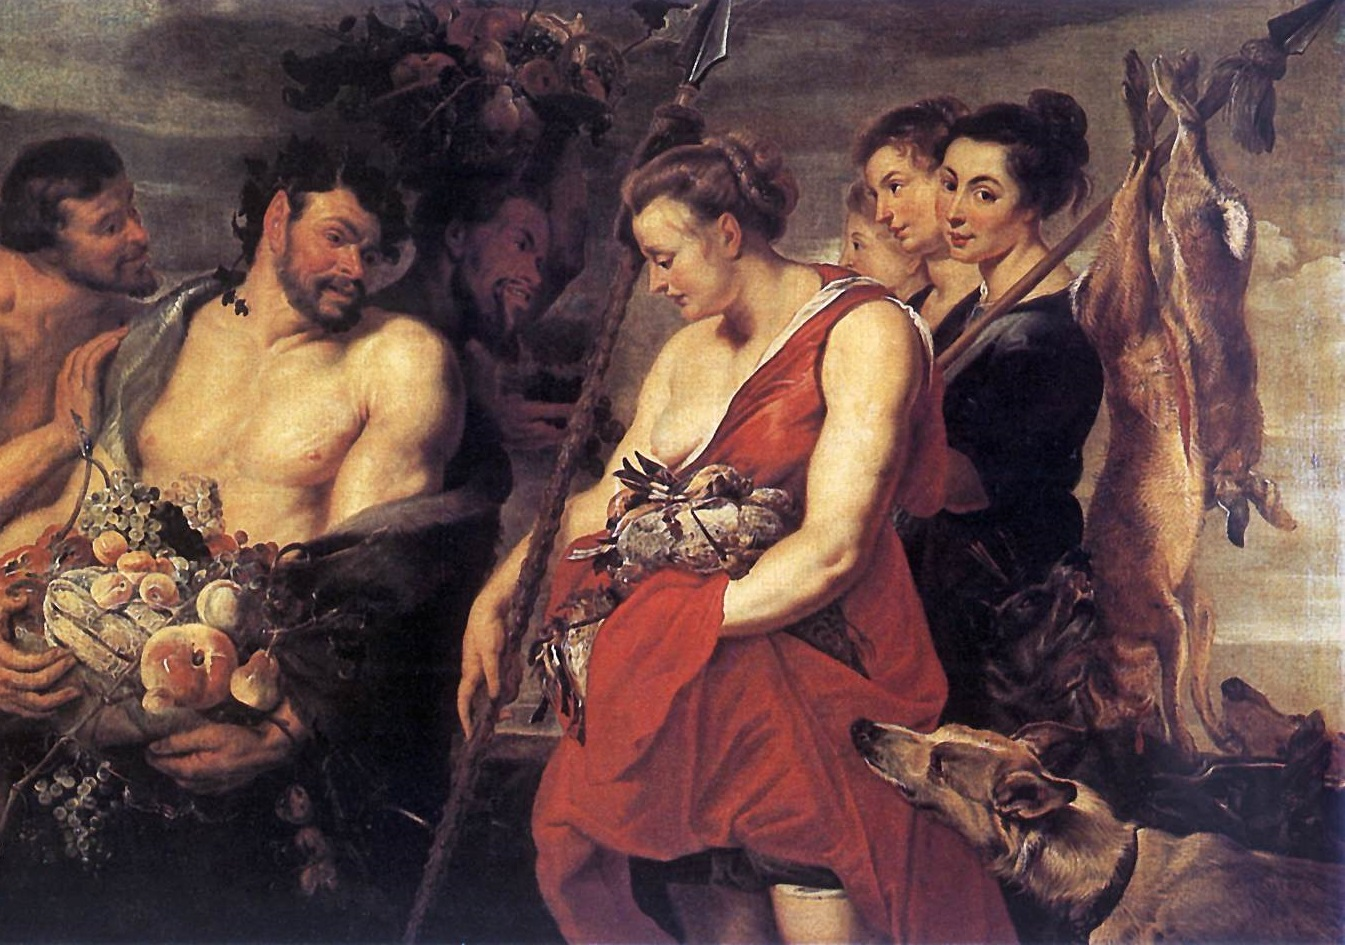 https://upload.wikimedia.org/wikipedia/commons/d/d9/Peter_Paul_Rubens_-_Diana_Presentig_the_Catch_to_Pan_-_WGA20291.jpg